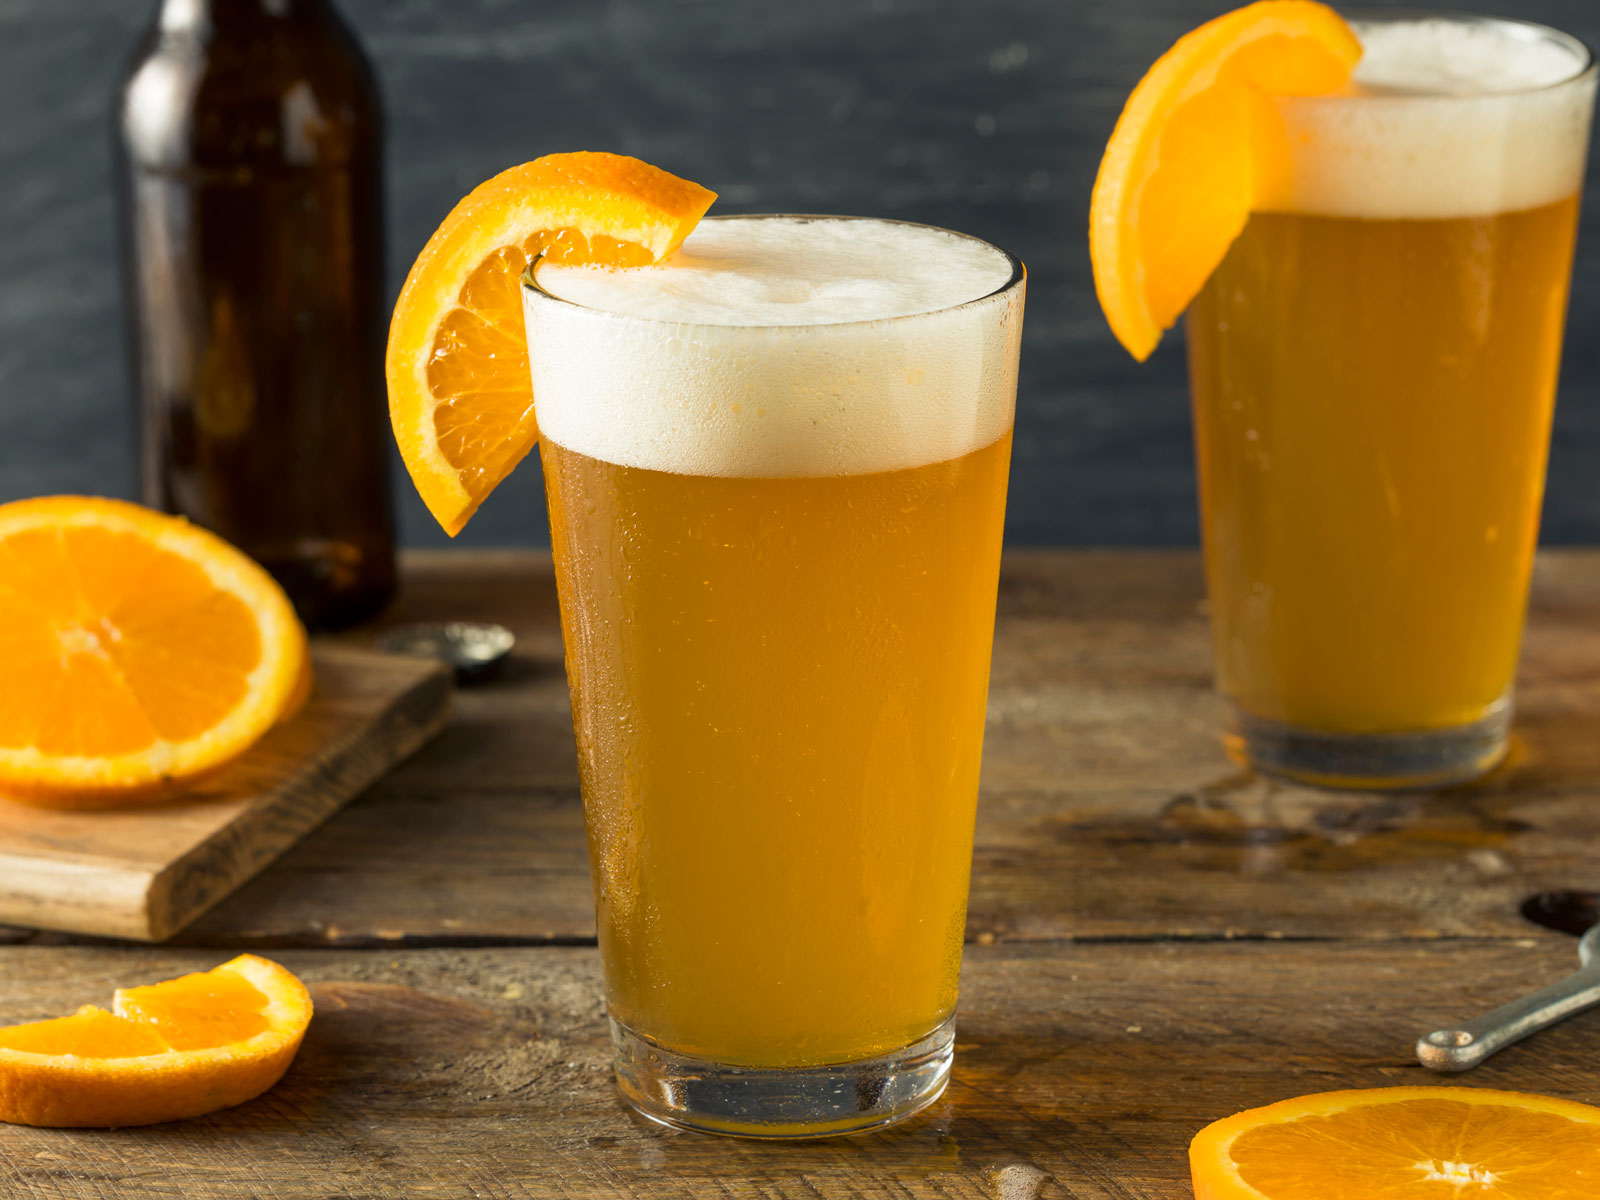 thc-beer-blue-moon-brewer-FT-BLOG0318.jpg